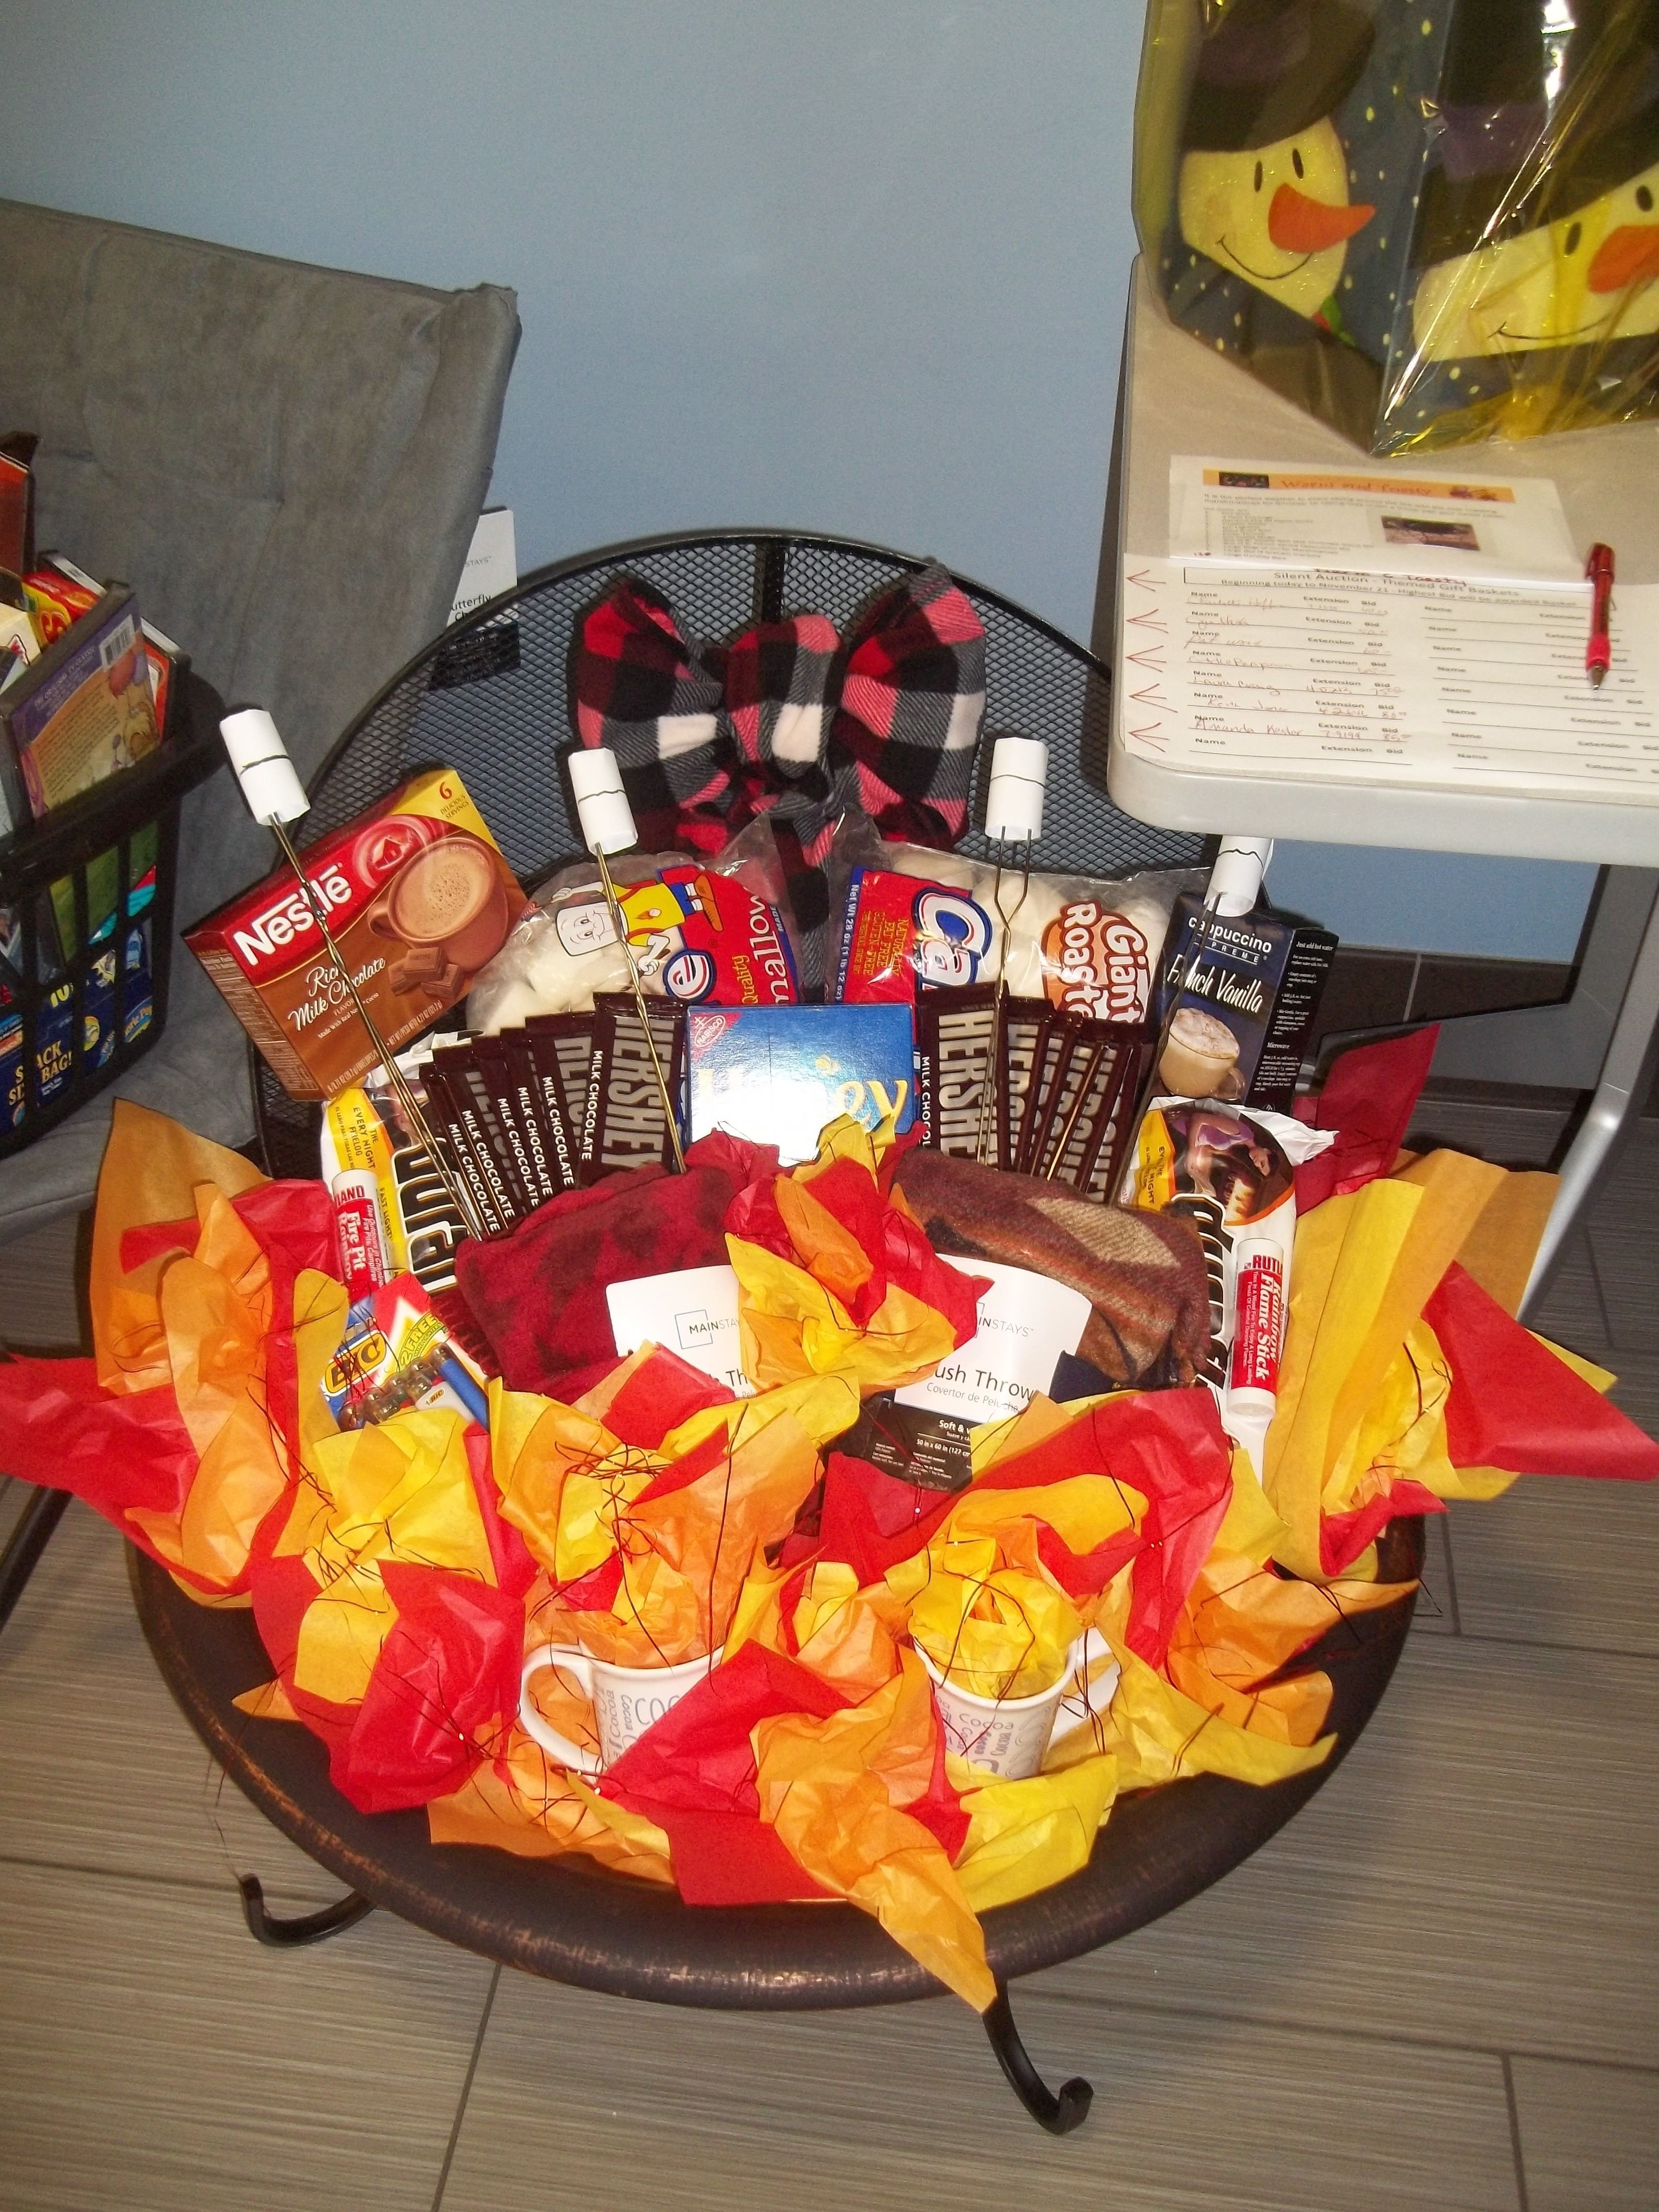 10 Cute Theme Basket Ideas For Silent Auction made this for a fundraiser silent auction its consist of a fire 1